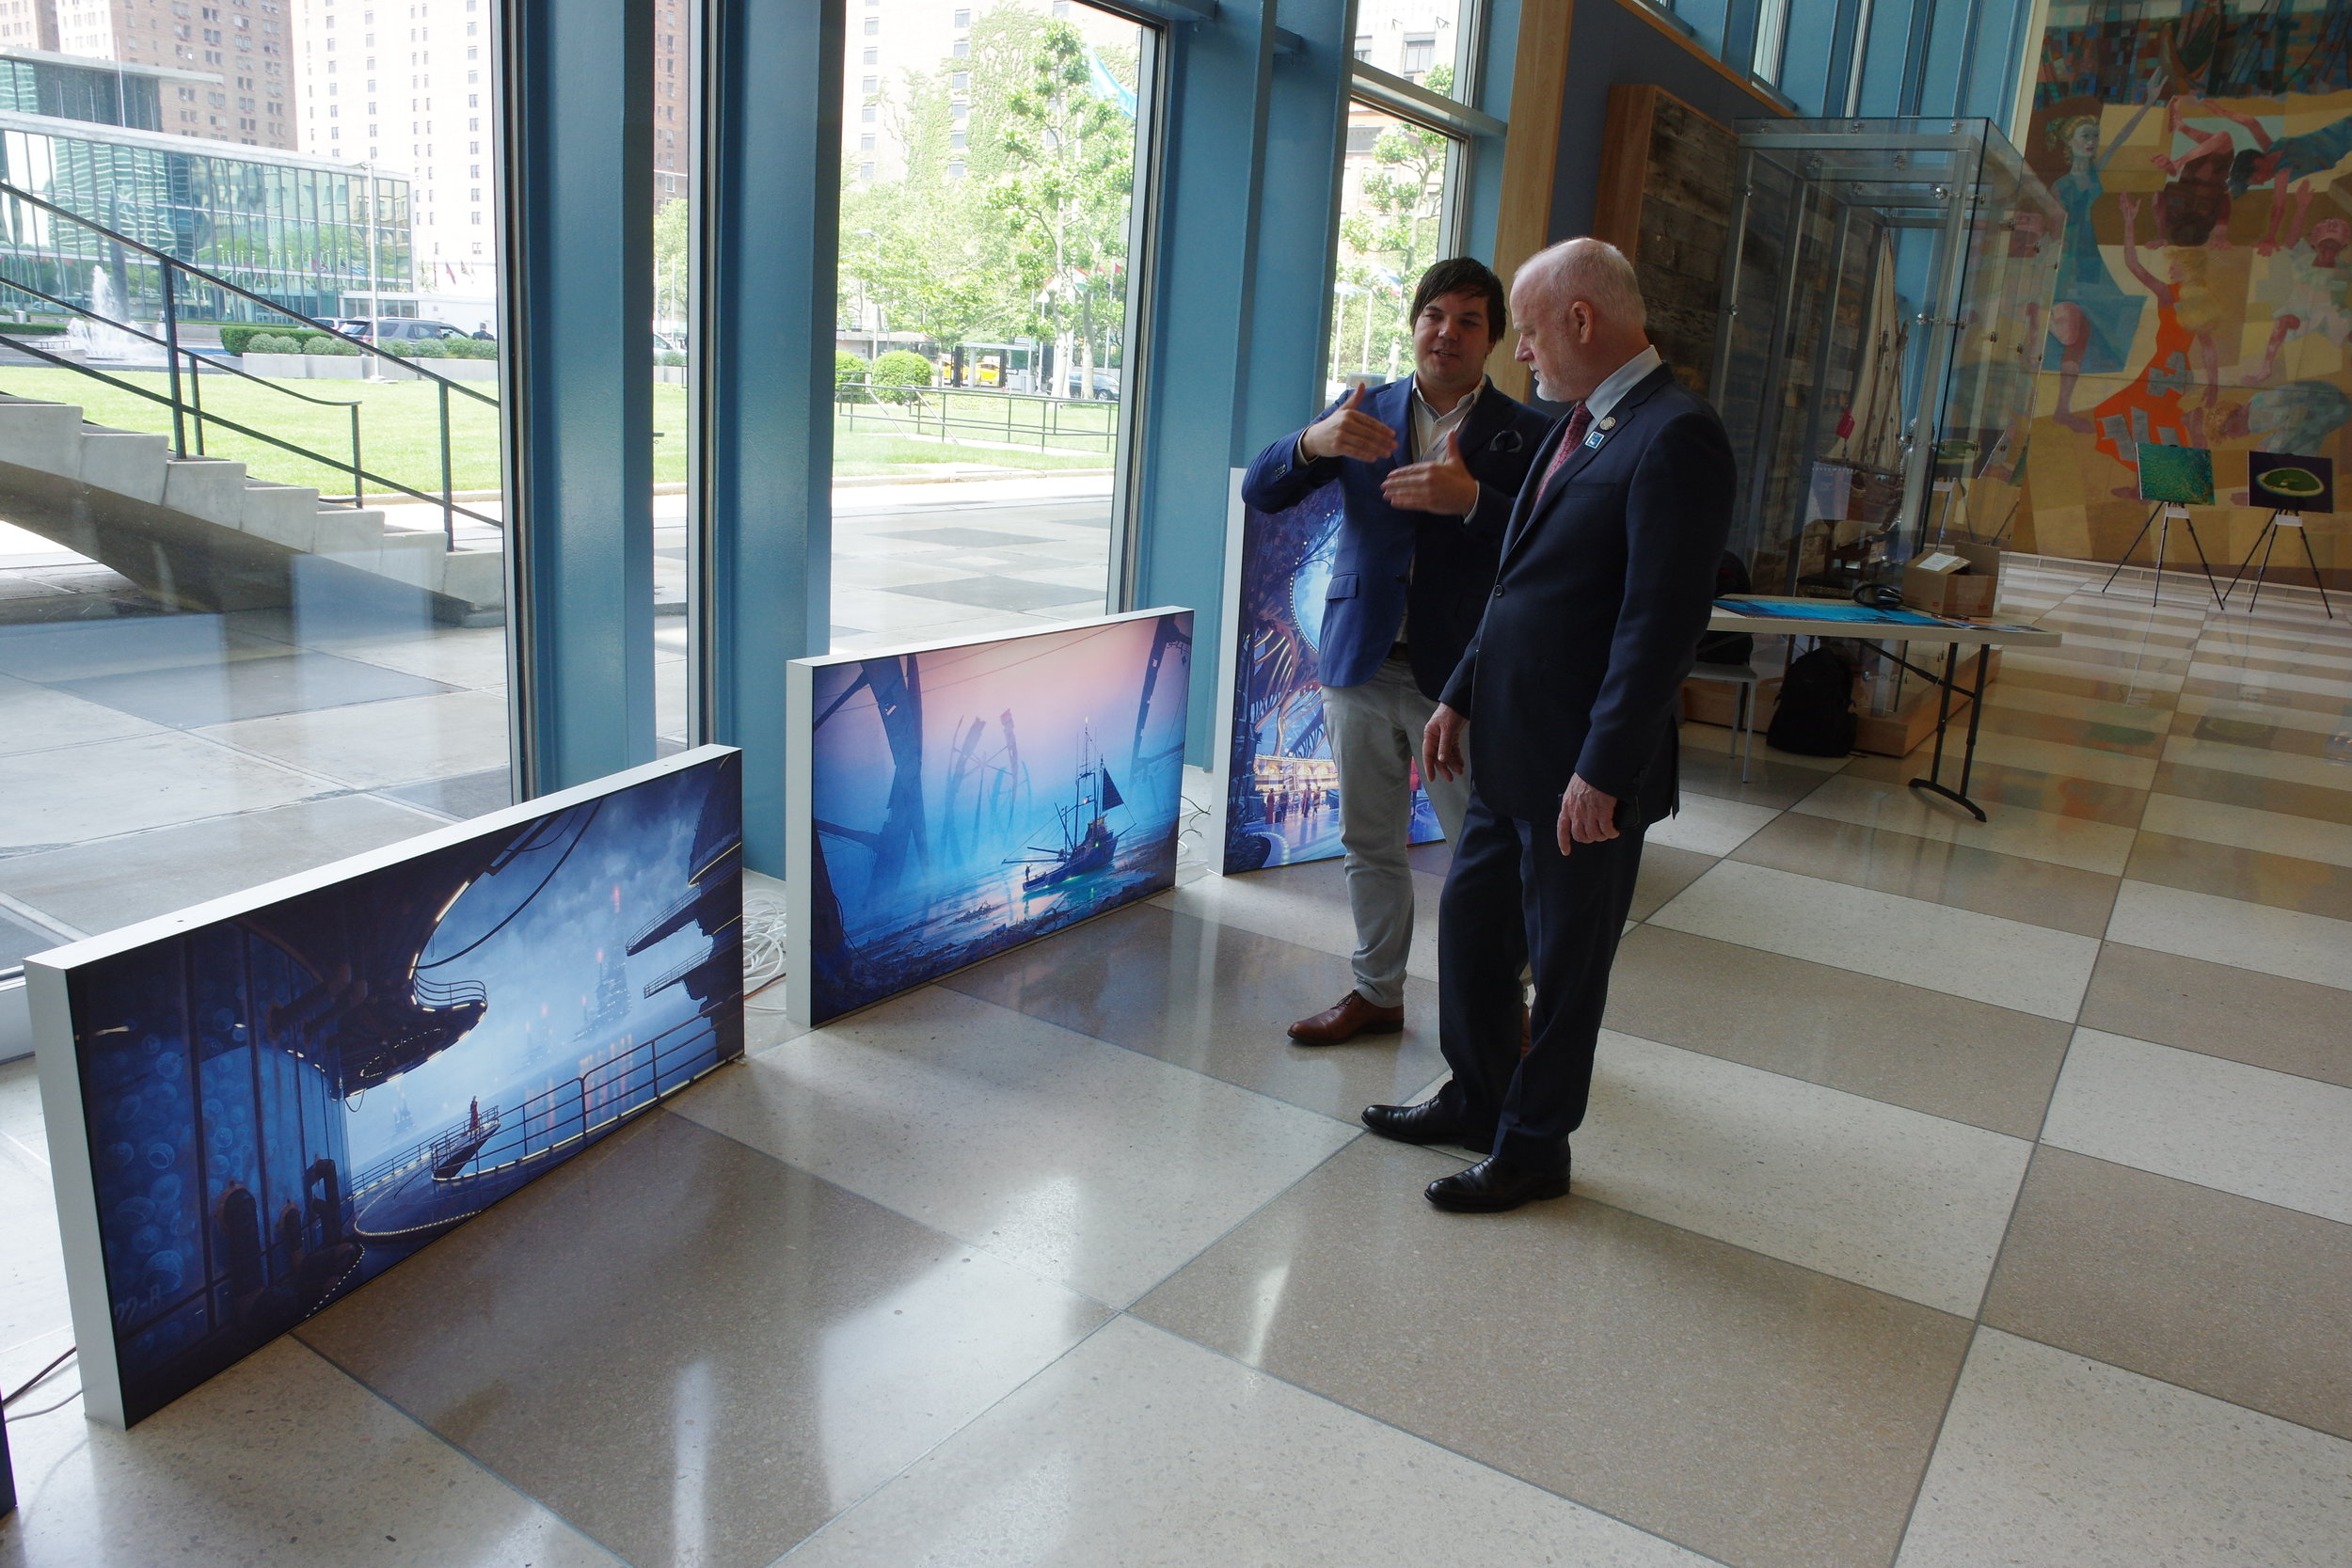 Here, Andrew presents the Radical Ocean Futures project to the President of the 71st Session of the United Nations General Assembly, Mr Peter Thomson during the UN Oceans #saveourocean  SDG 14  meeting in June 2017